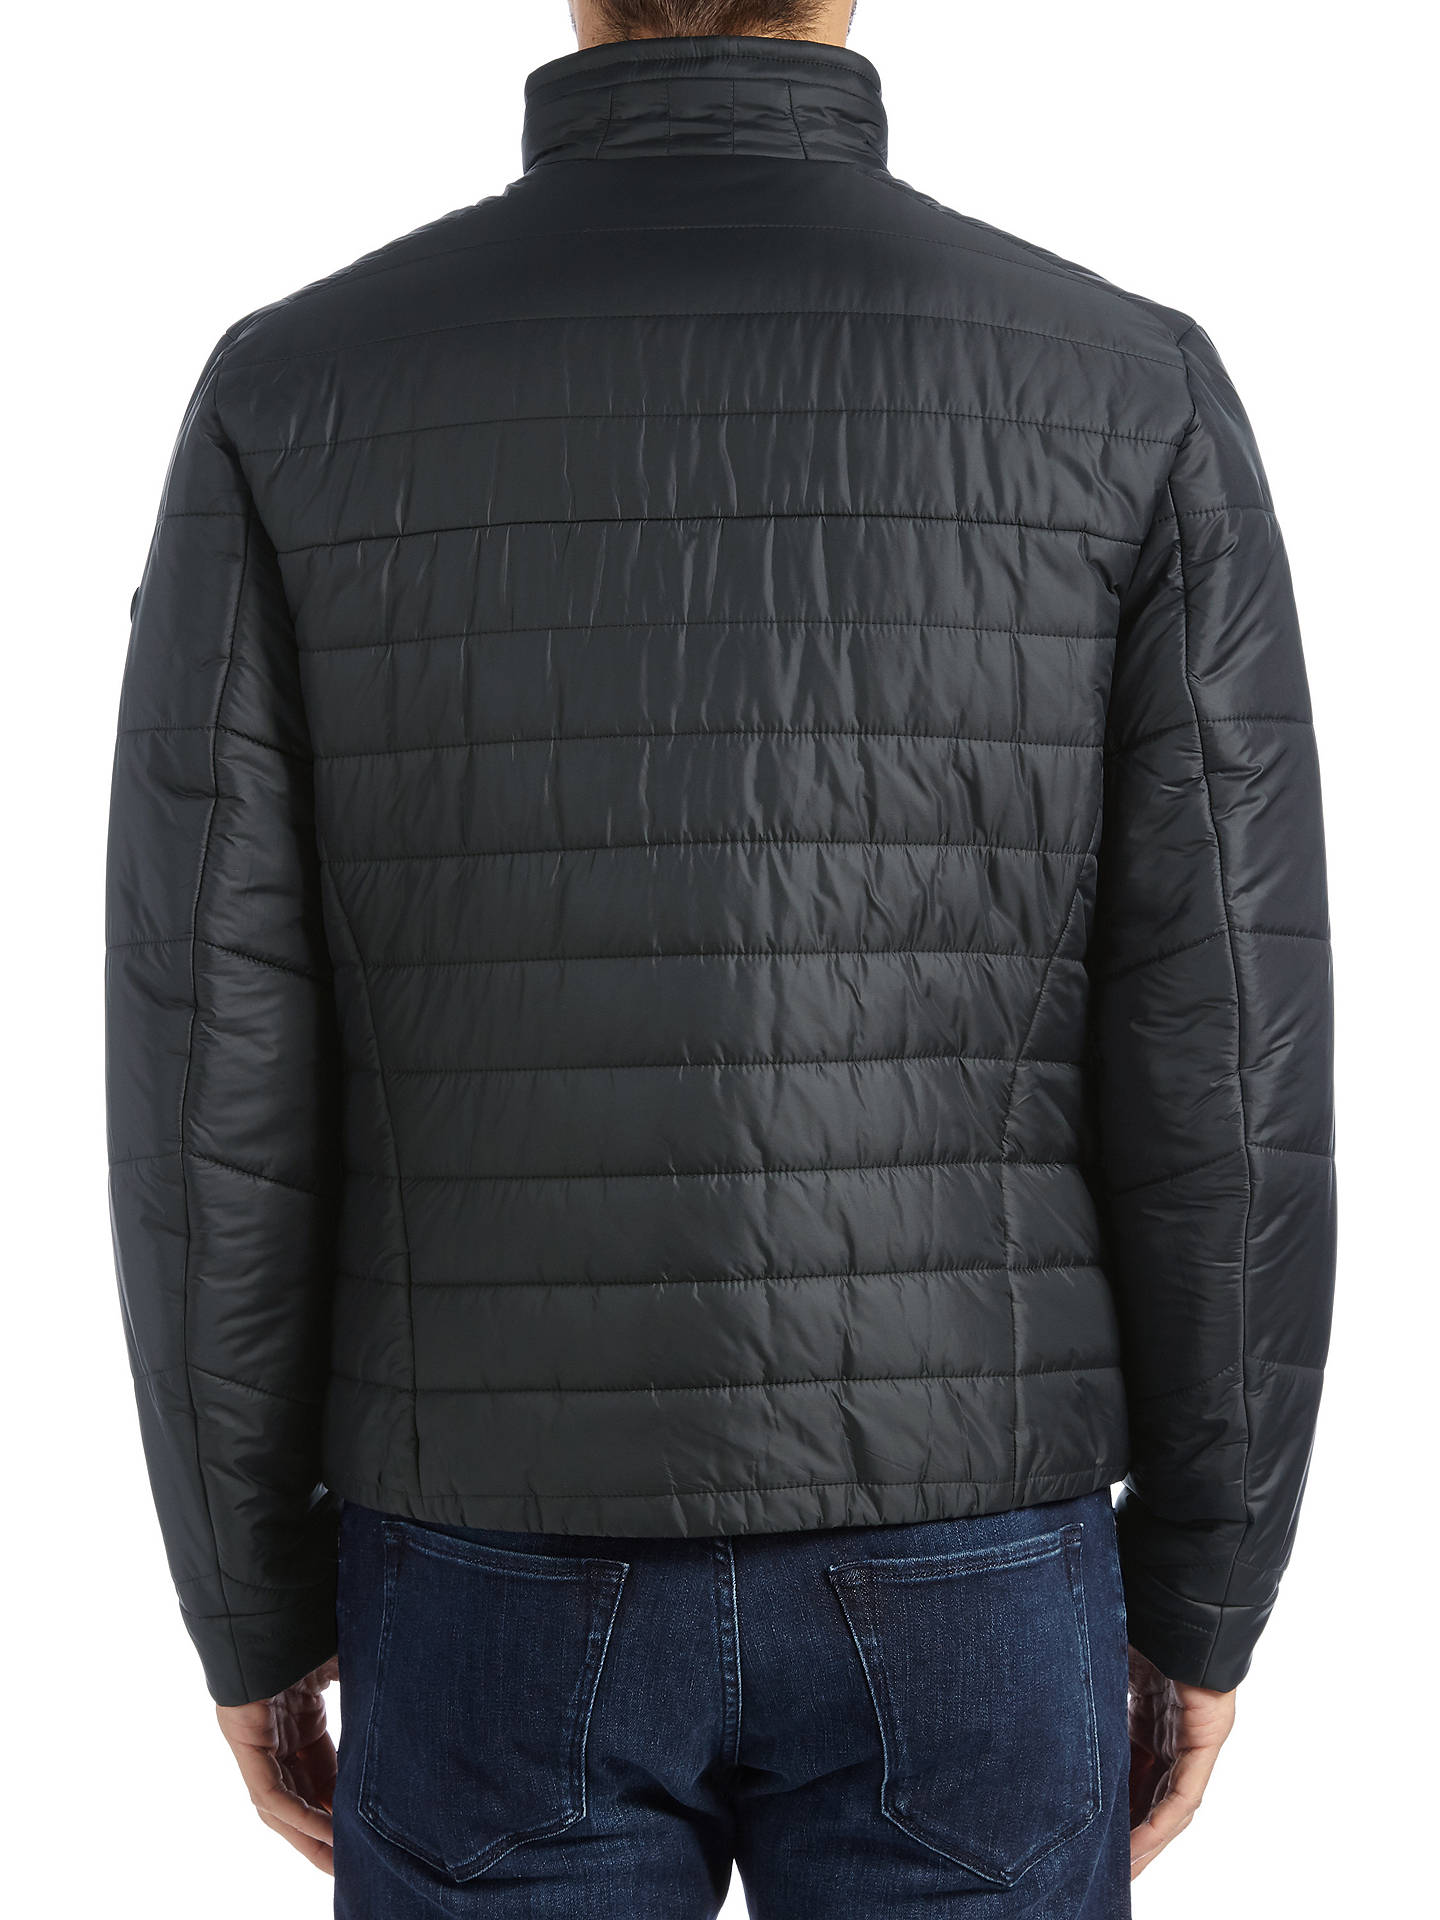 BuyBOSS Green Hero Jacket, Black, 36R Online at johnlewis.com